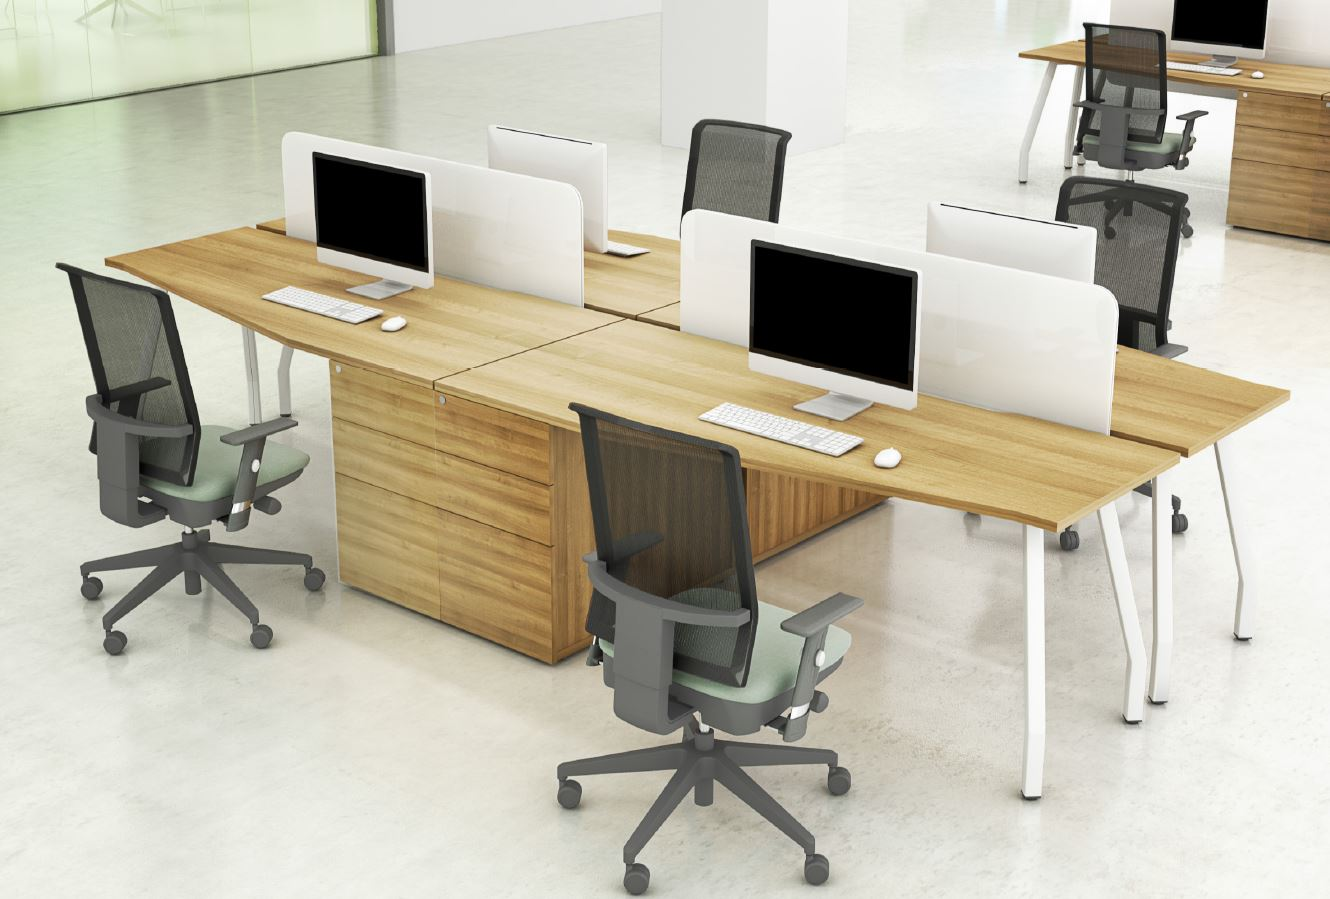 Script-Desks-White-Angled-Legs-In-Situ